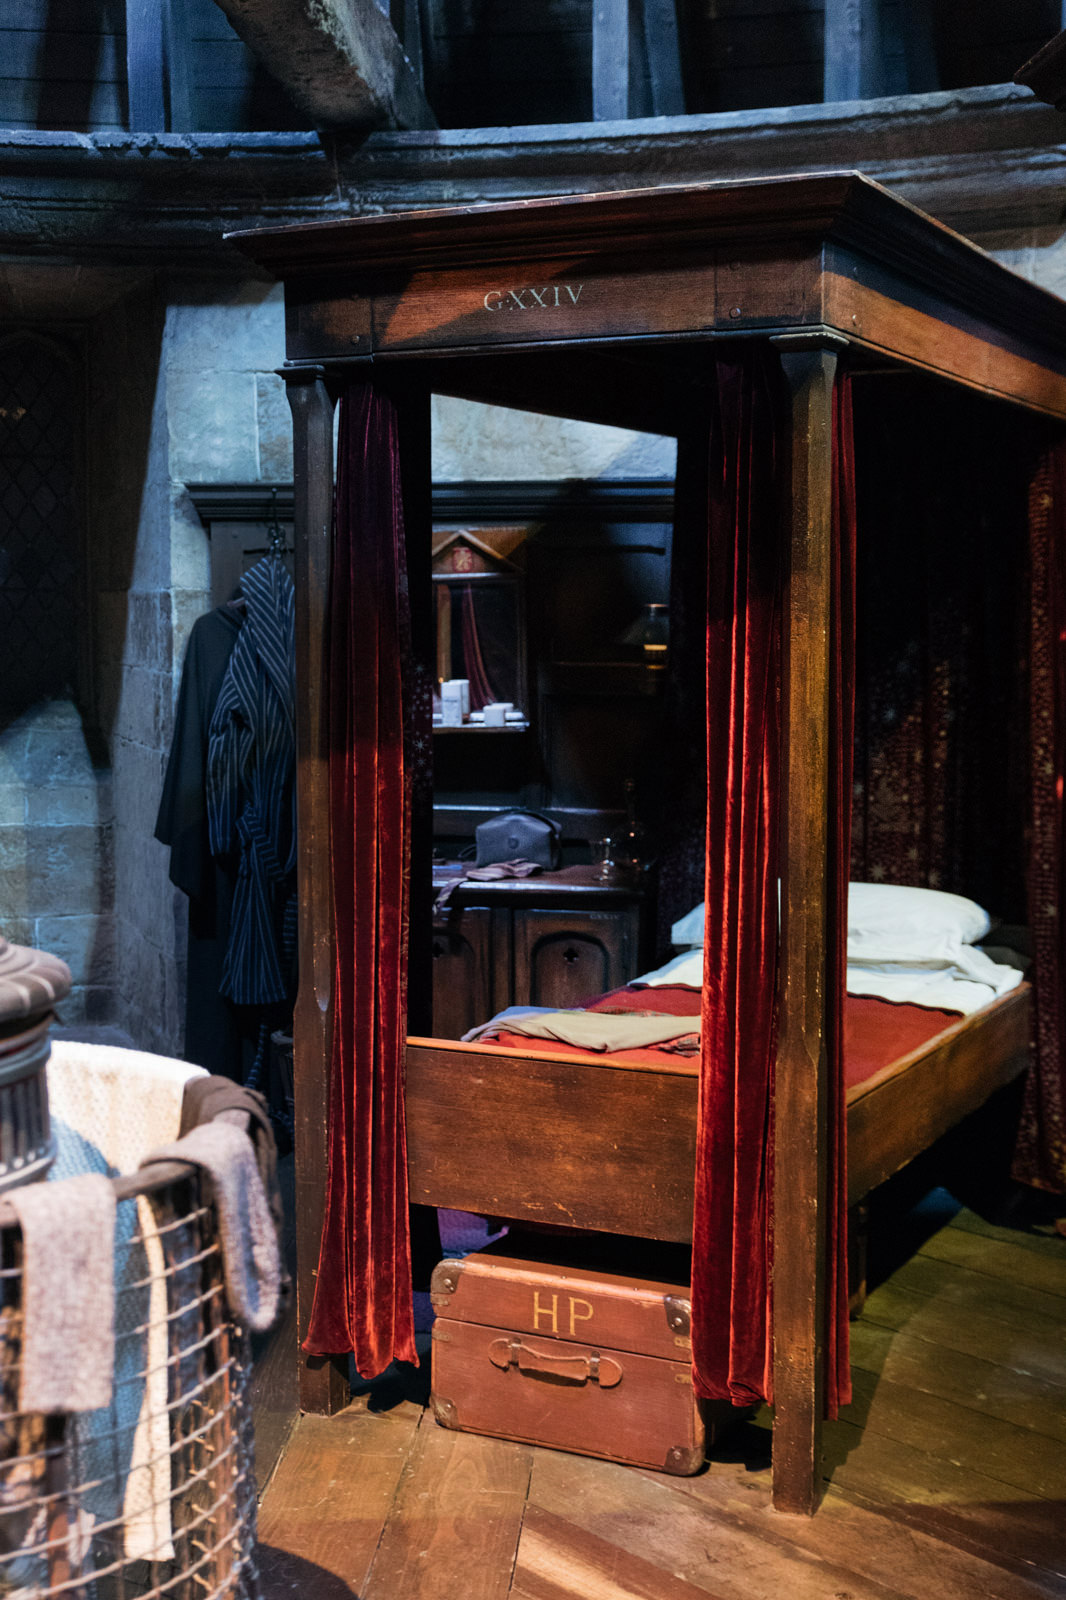 Blog-Mode-And-The-City-Lifestyle-Visite-Studios-Harry-Potter-Londres-11